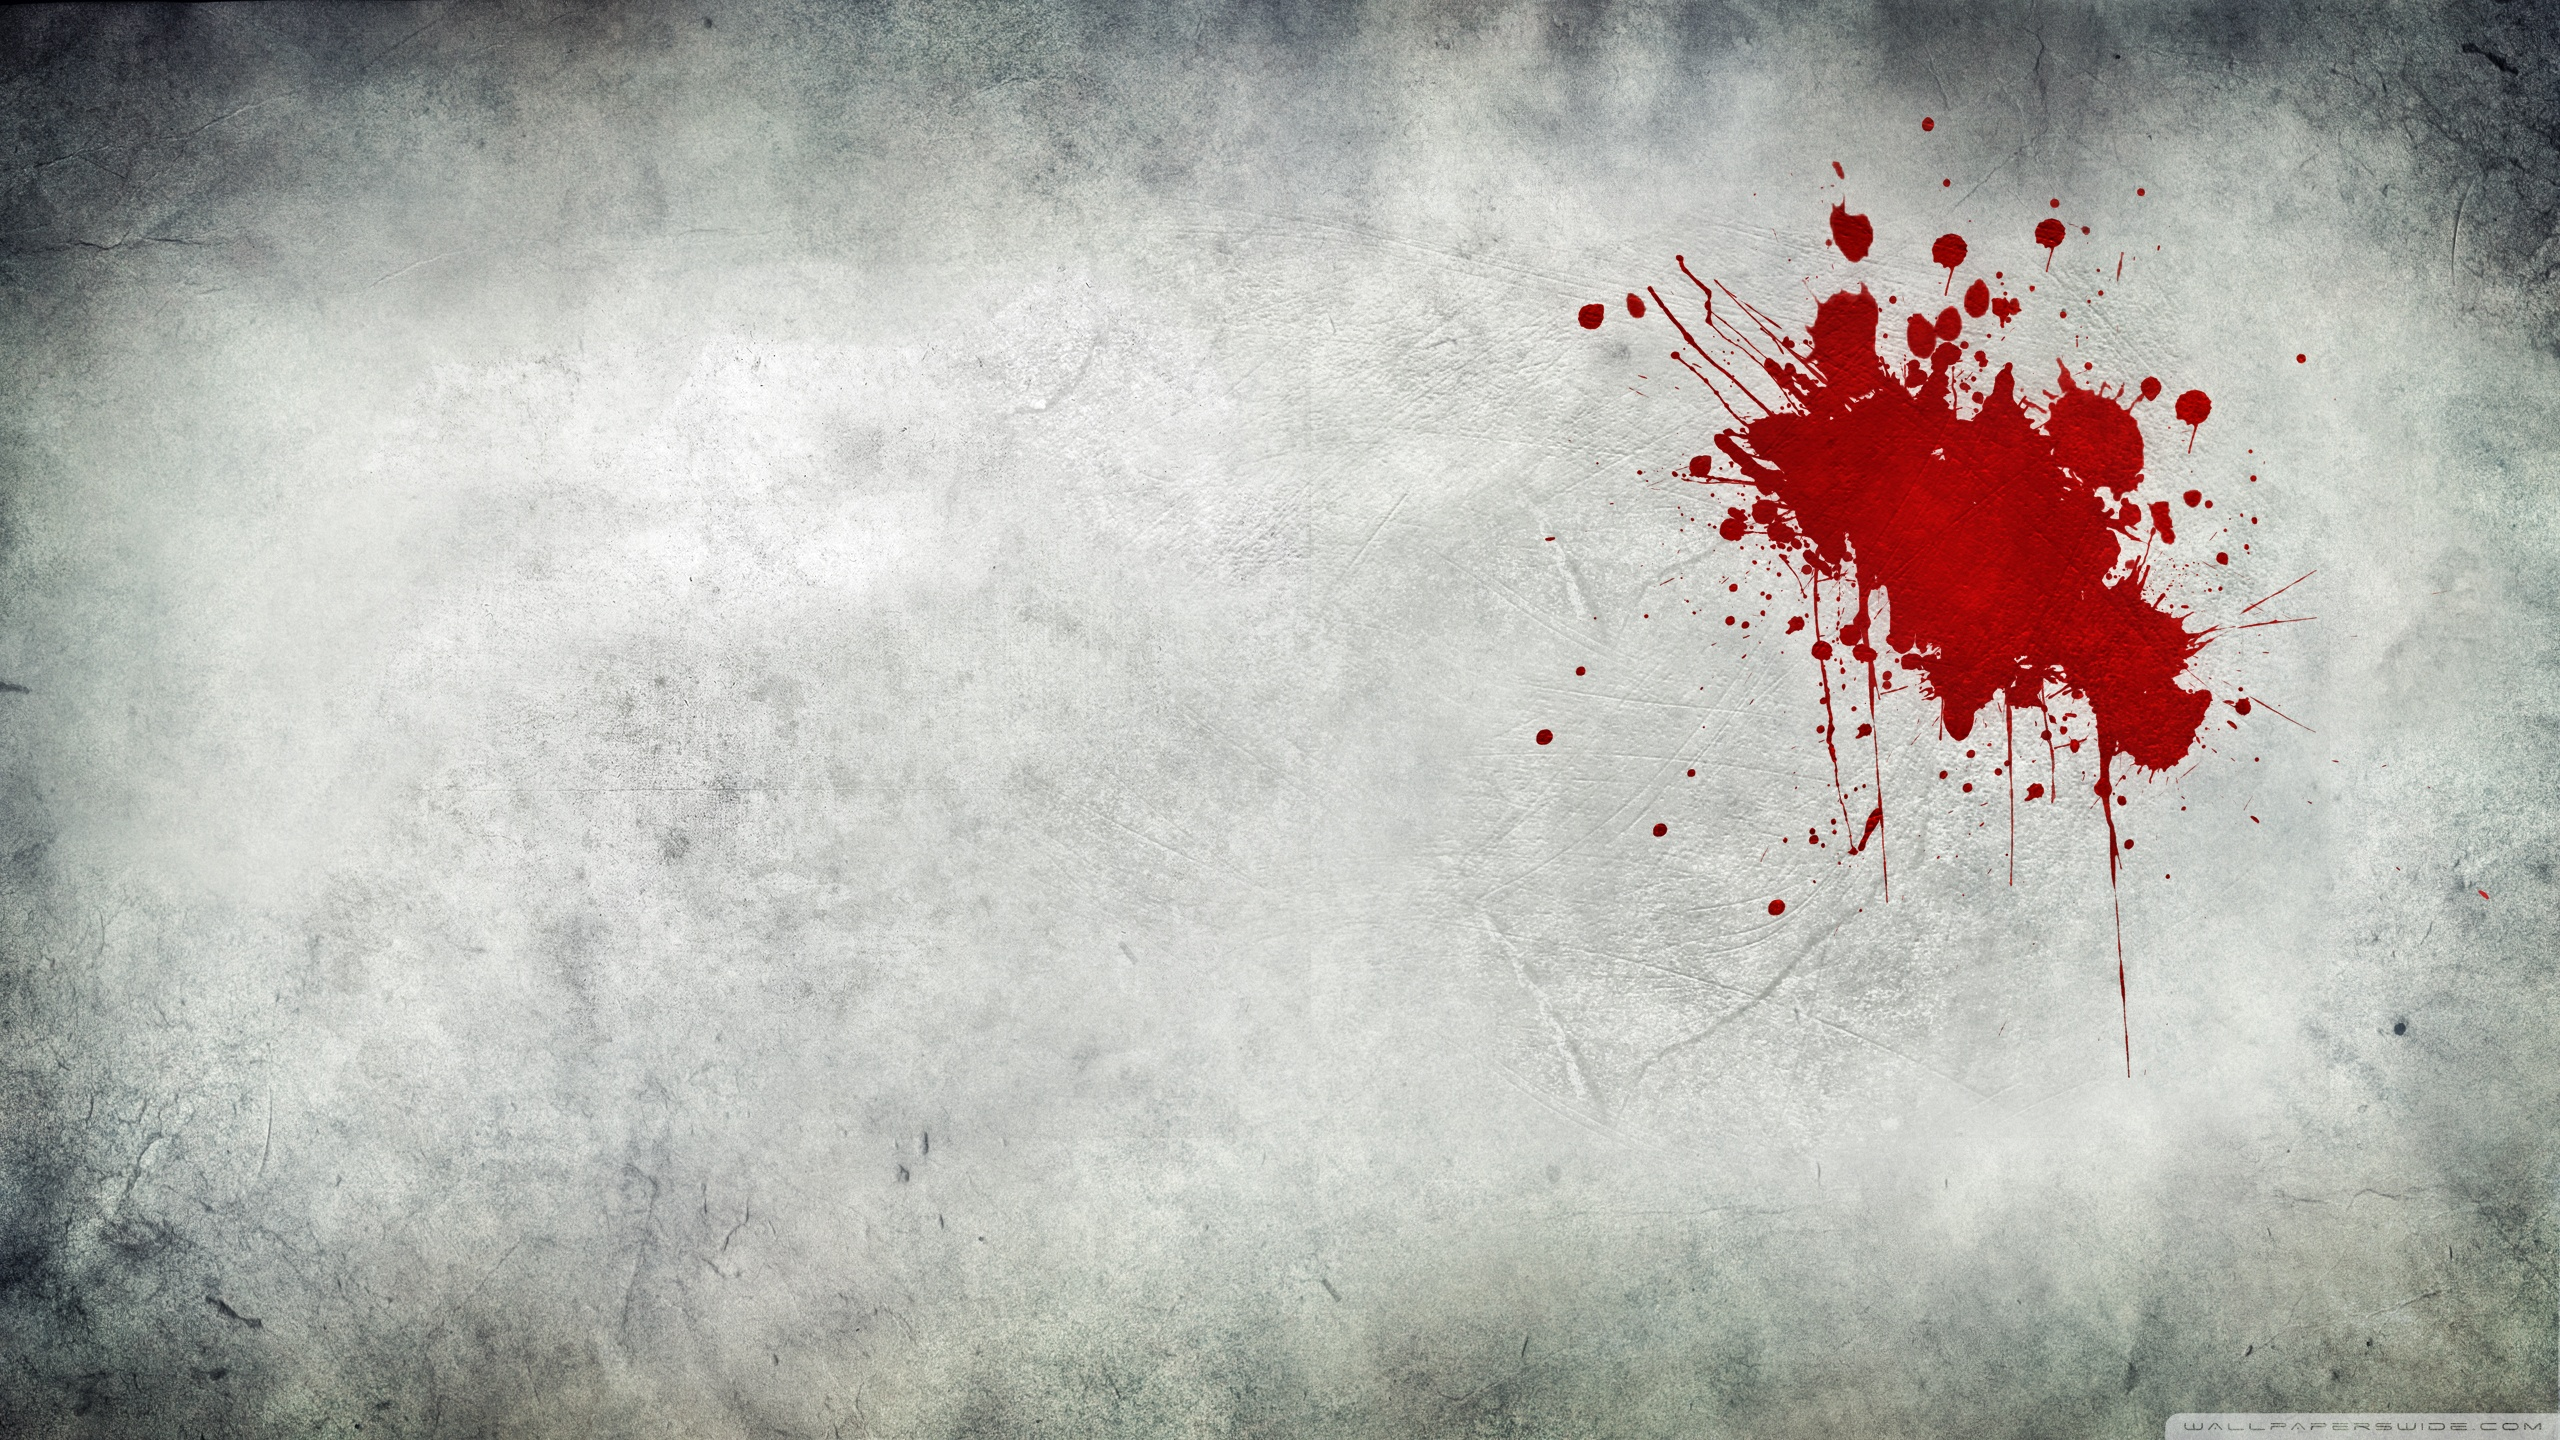 HD Wallpapers Blood